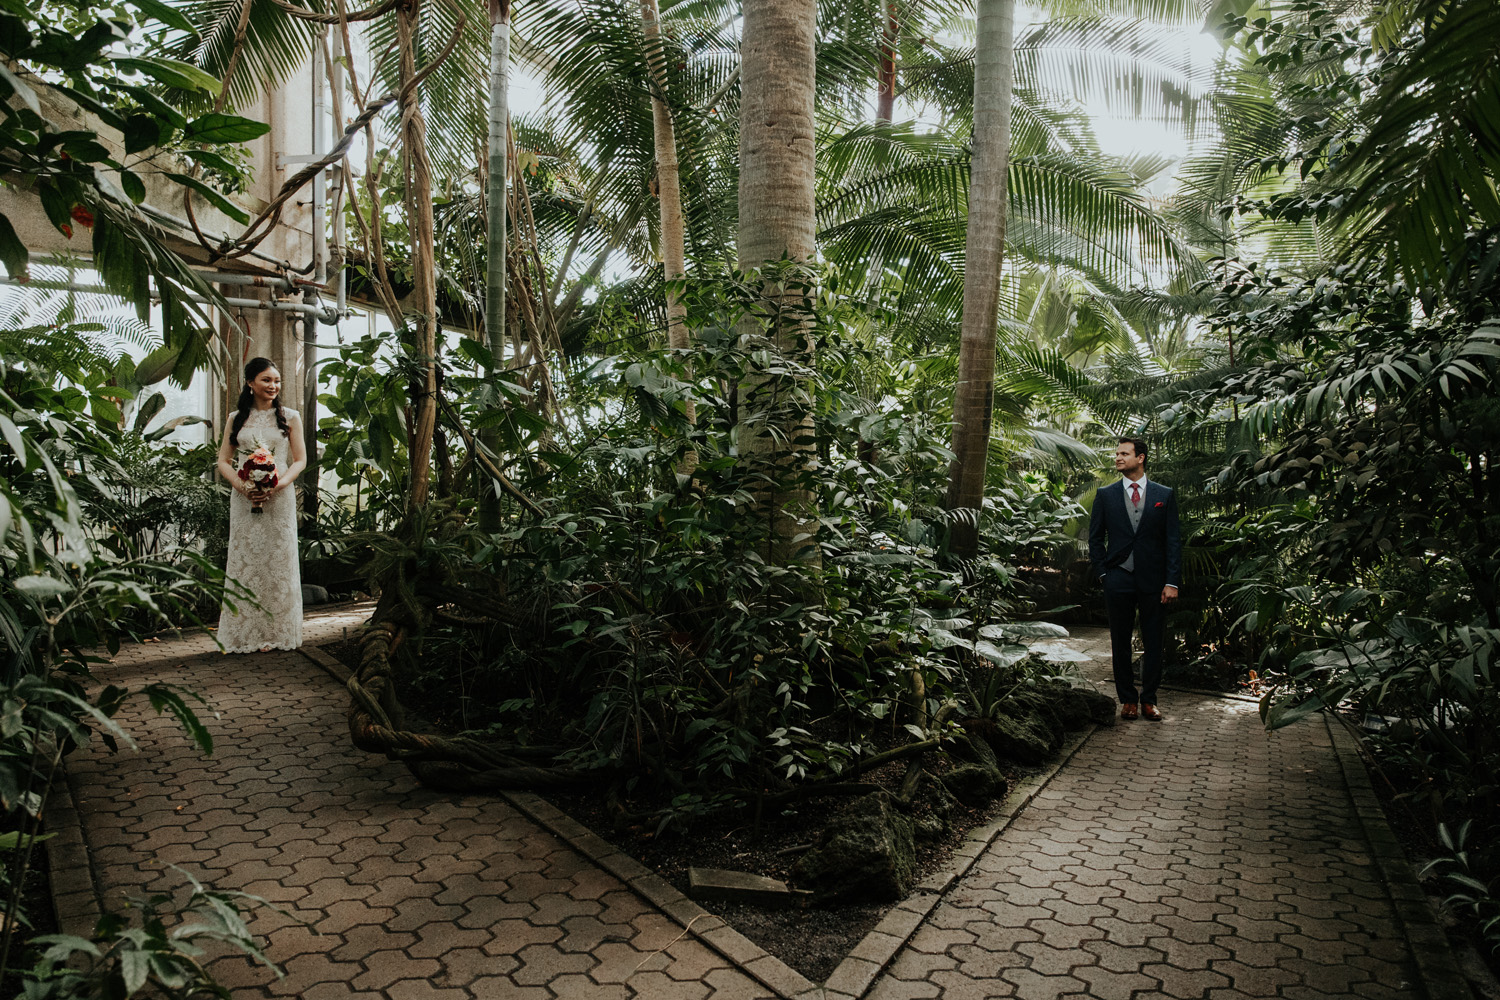 atlanta wedding photographers destination elopement photographer engagement photography atlanta botanical gardens_1021.jpg